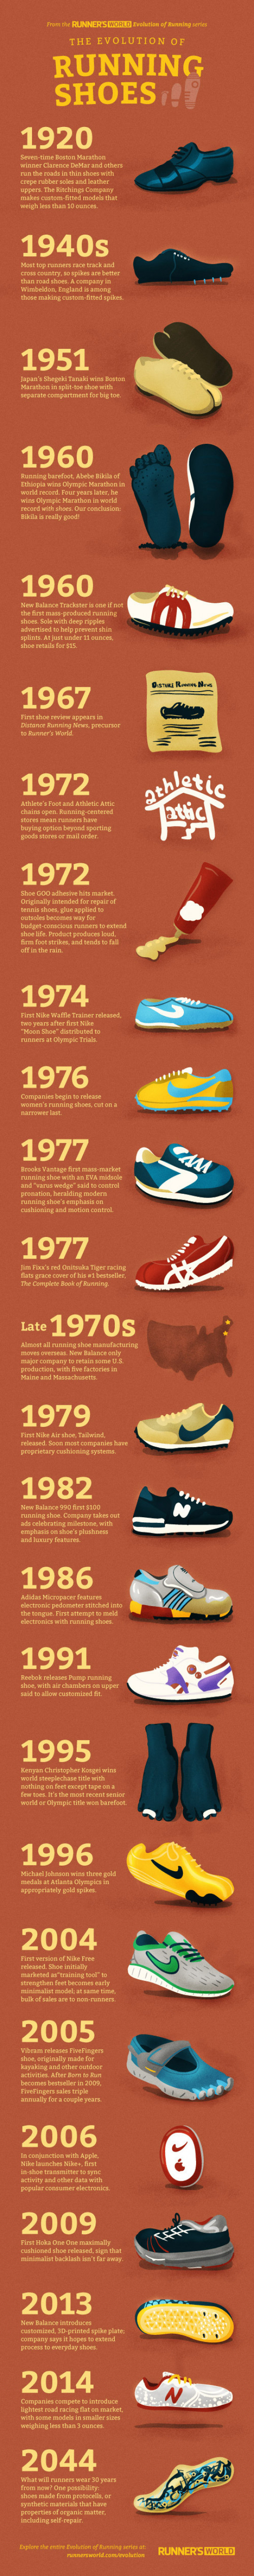 The Evolution of Running Shoes